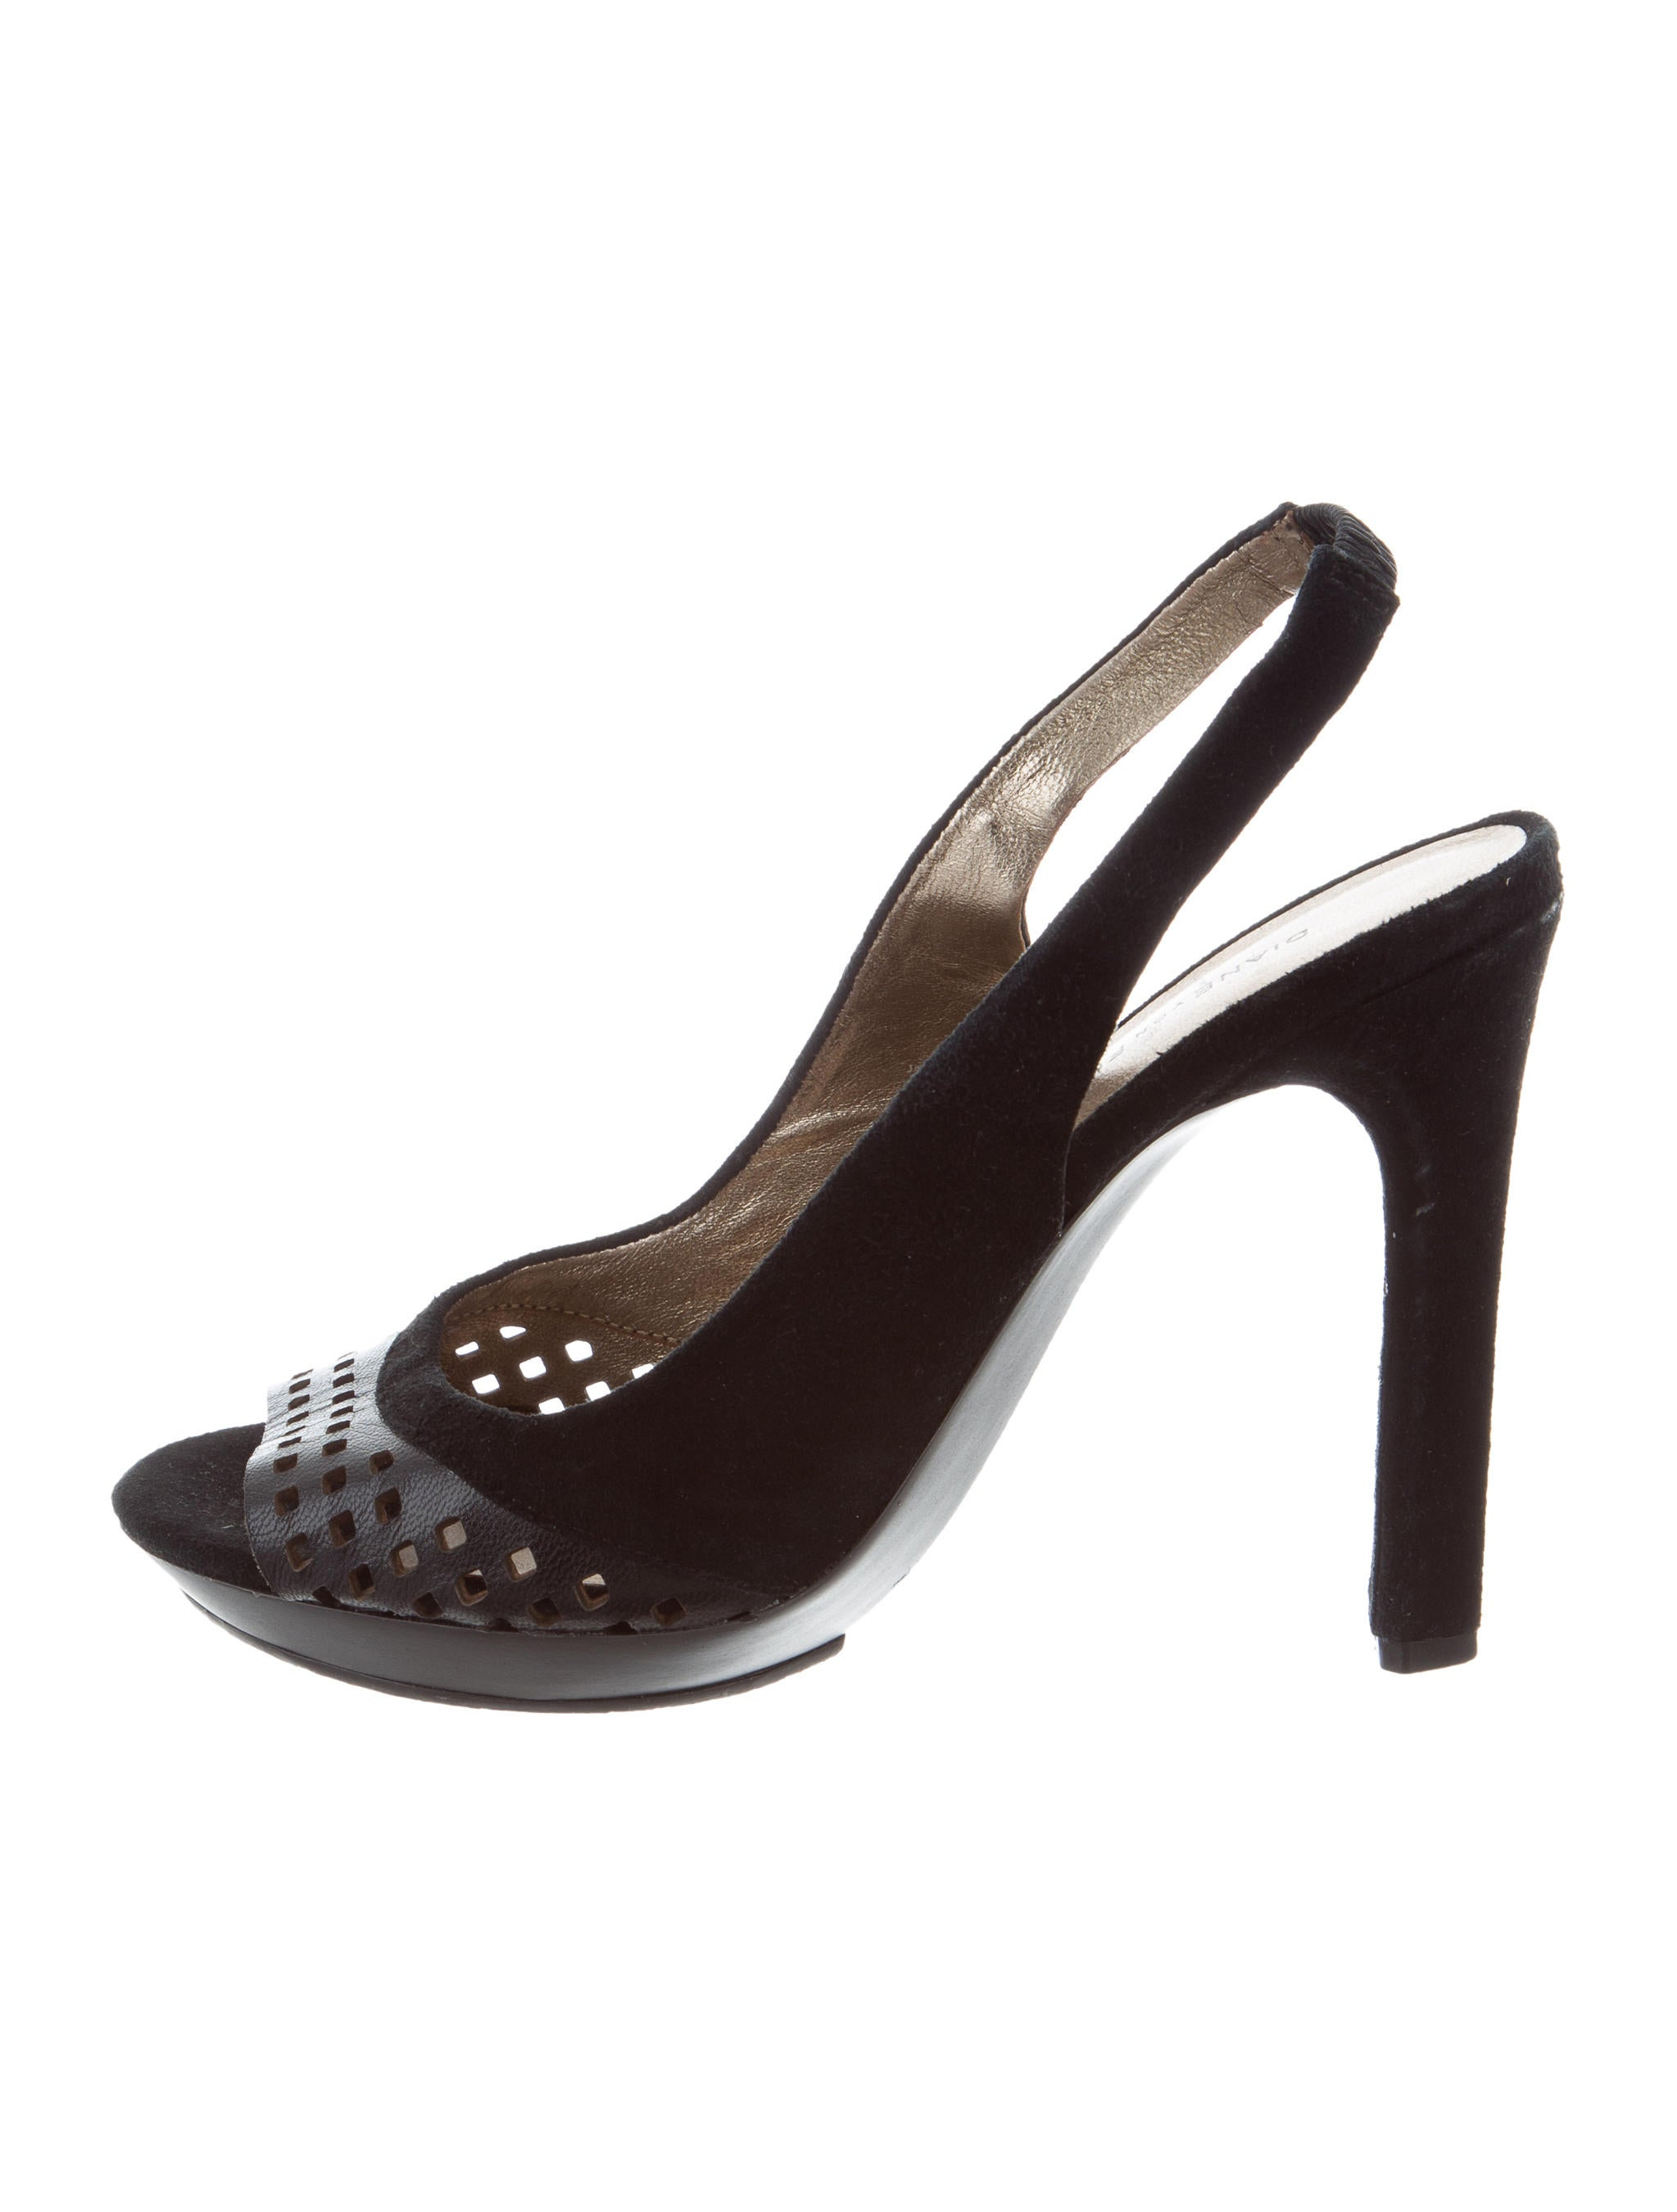 Diane von Furstenberg Perforated Peep-Toe Slingbacks purchase cheap price excellent cheap price outlet sale exclusive MtAFw